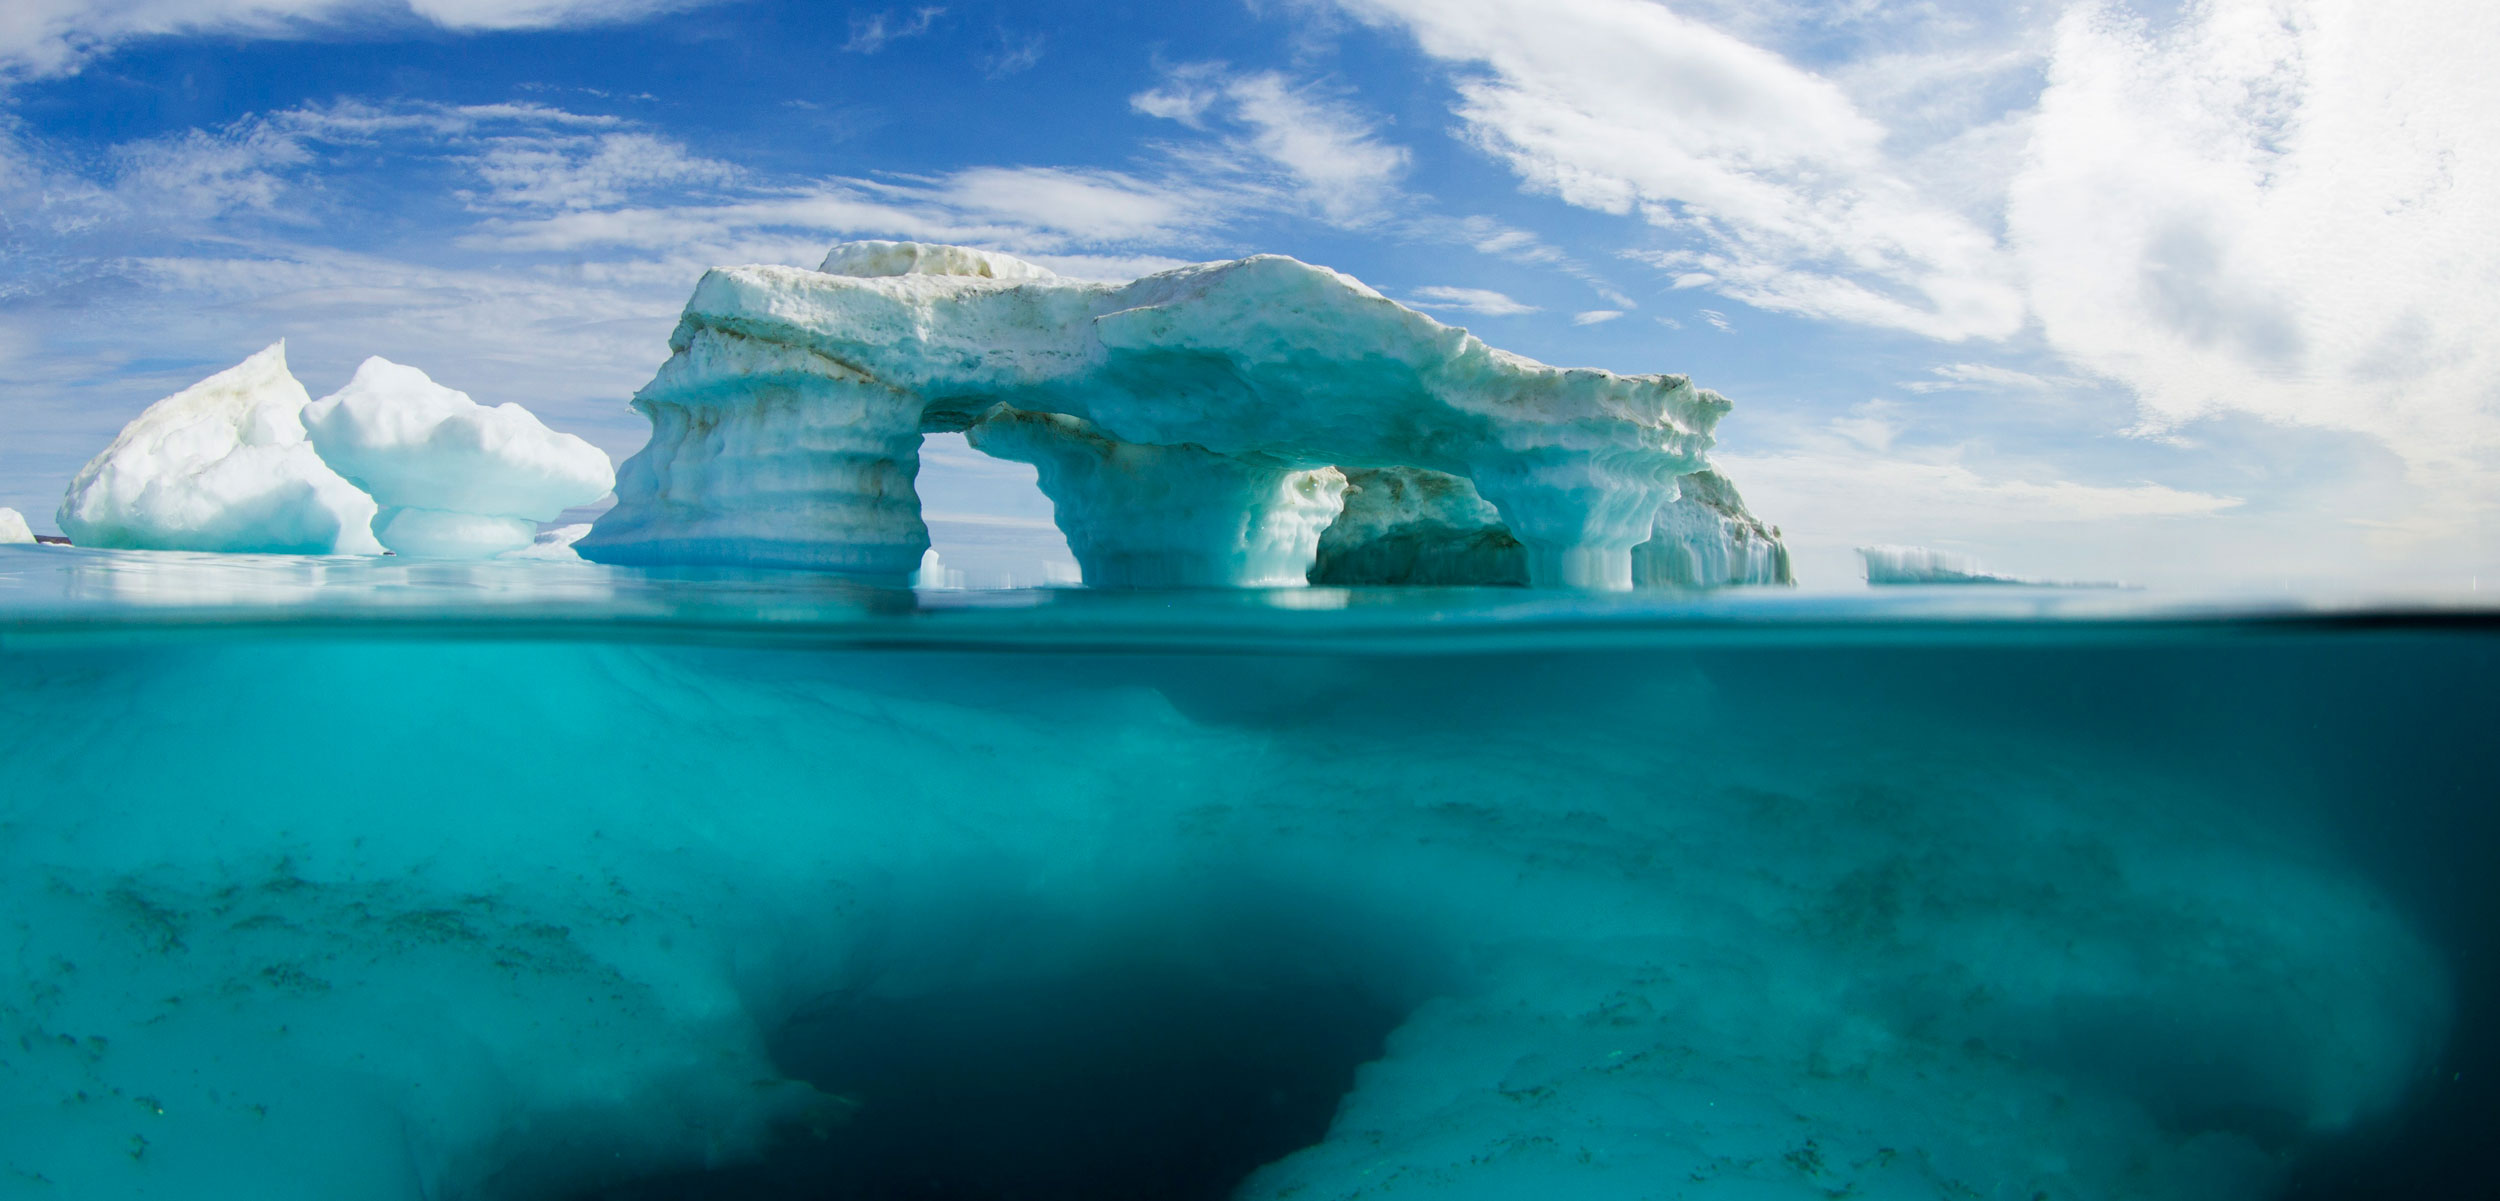 Underwater view of melting iceberg in Harbour Islands on Hudson Bay just south of arctic circle, Repulse Bay, Nunavut Territory, Canada